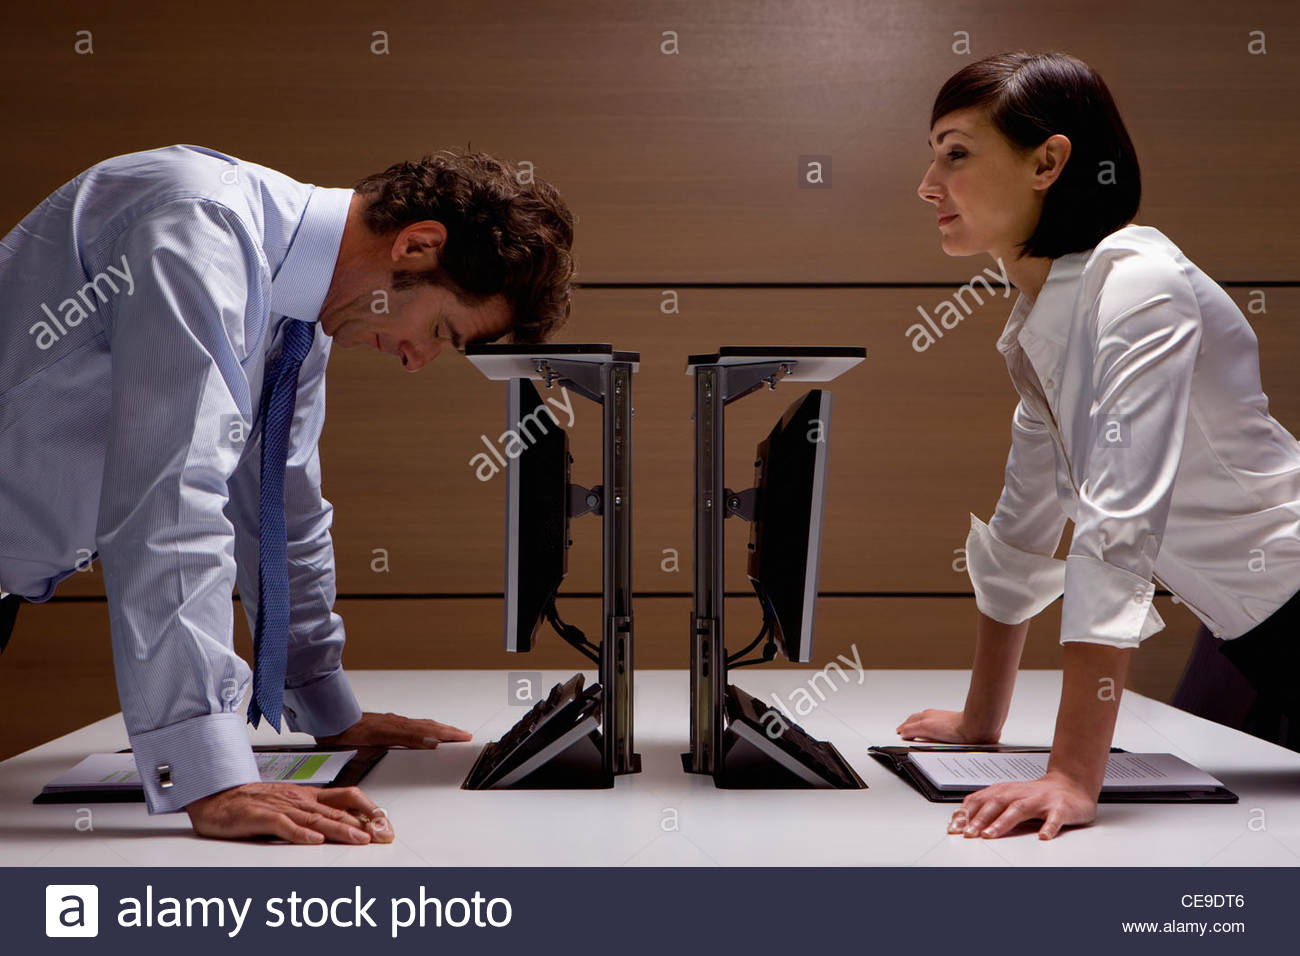 Businesswoman watching businessman lean on computer in office - Stock Image